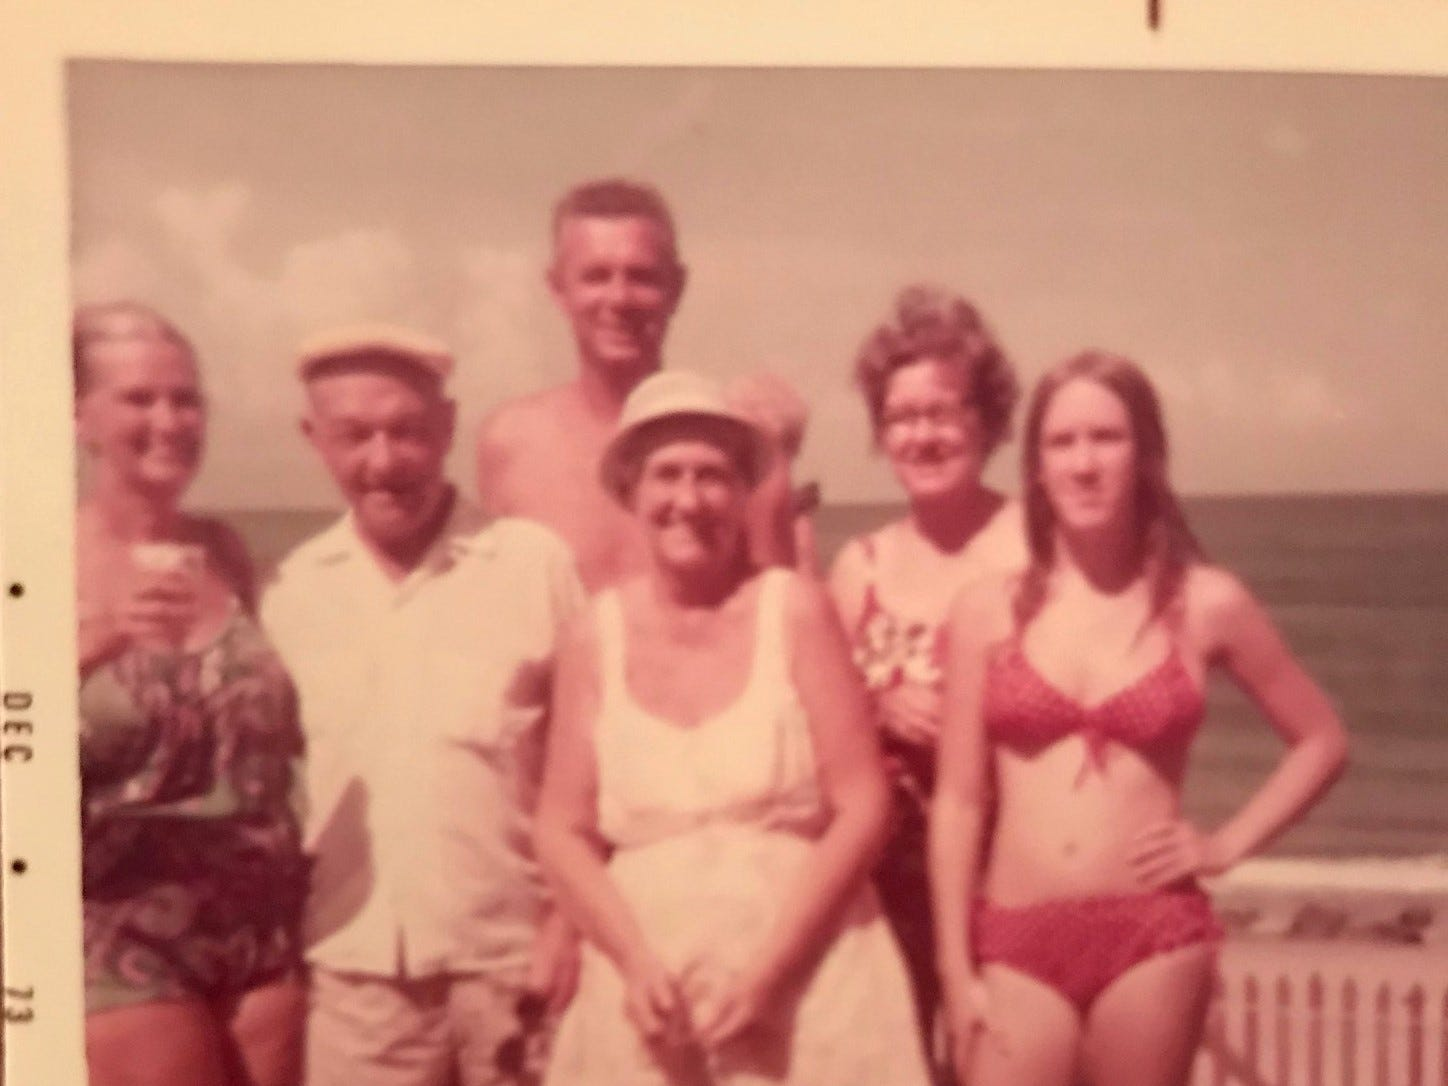 A family vacation in December 1973: But who are the people in this picture? And how did the photo album this picture was in wind up in a Melbourne, Florida, parking lot in 2011?